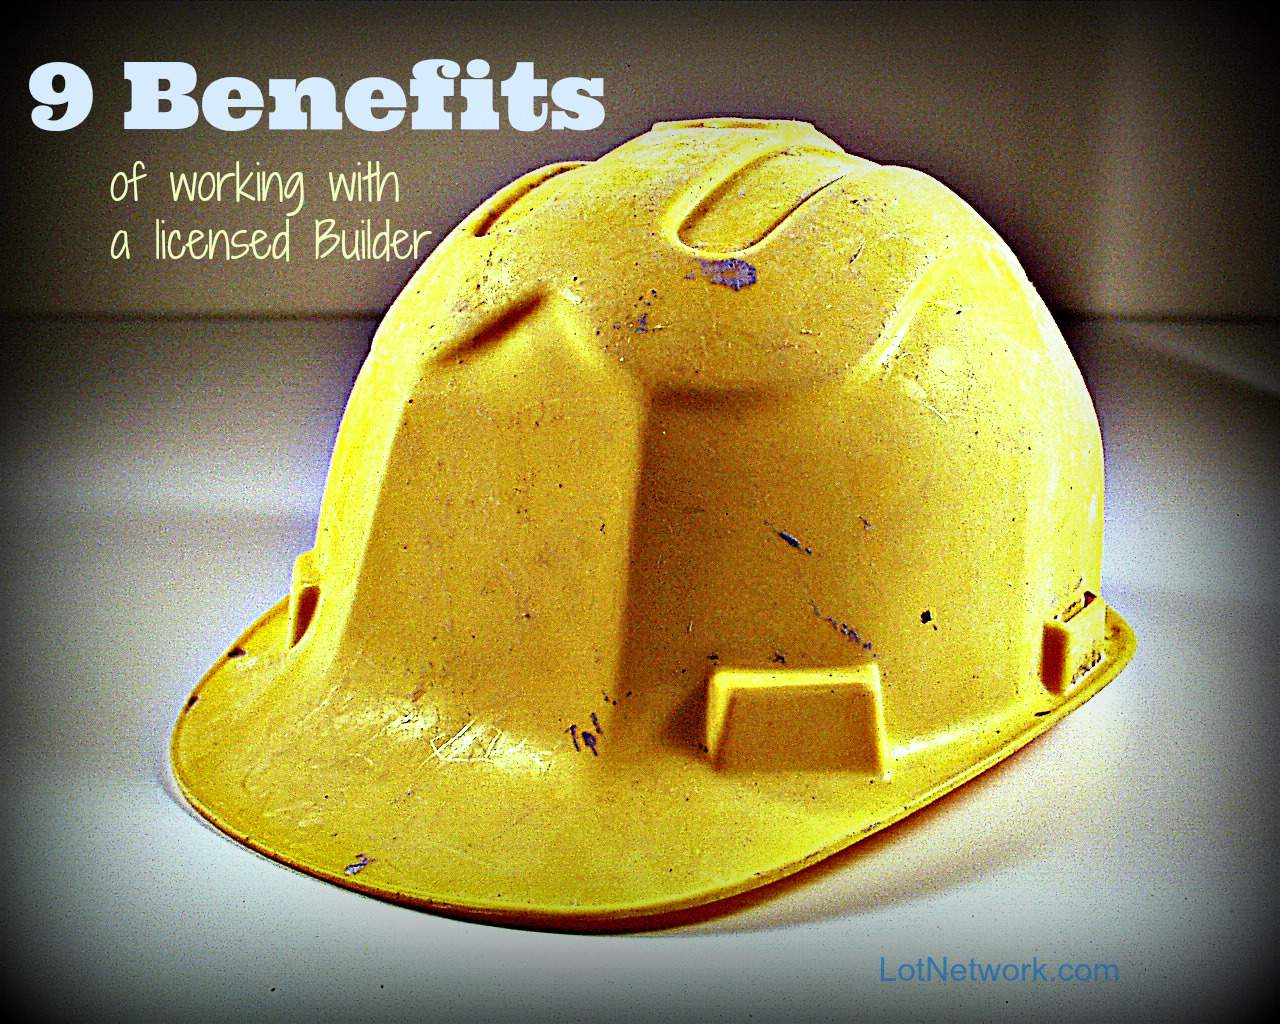 Hardhat photo with text - 9 Benefits of Working with a Licensed Builder